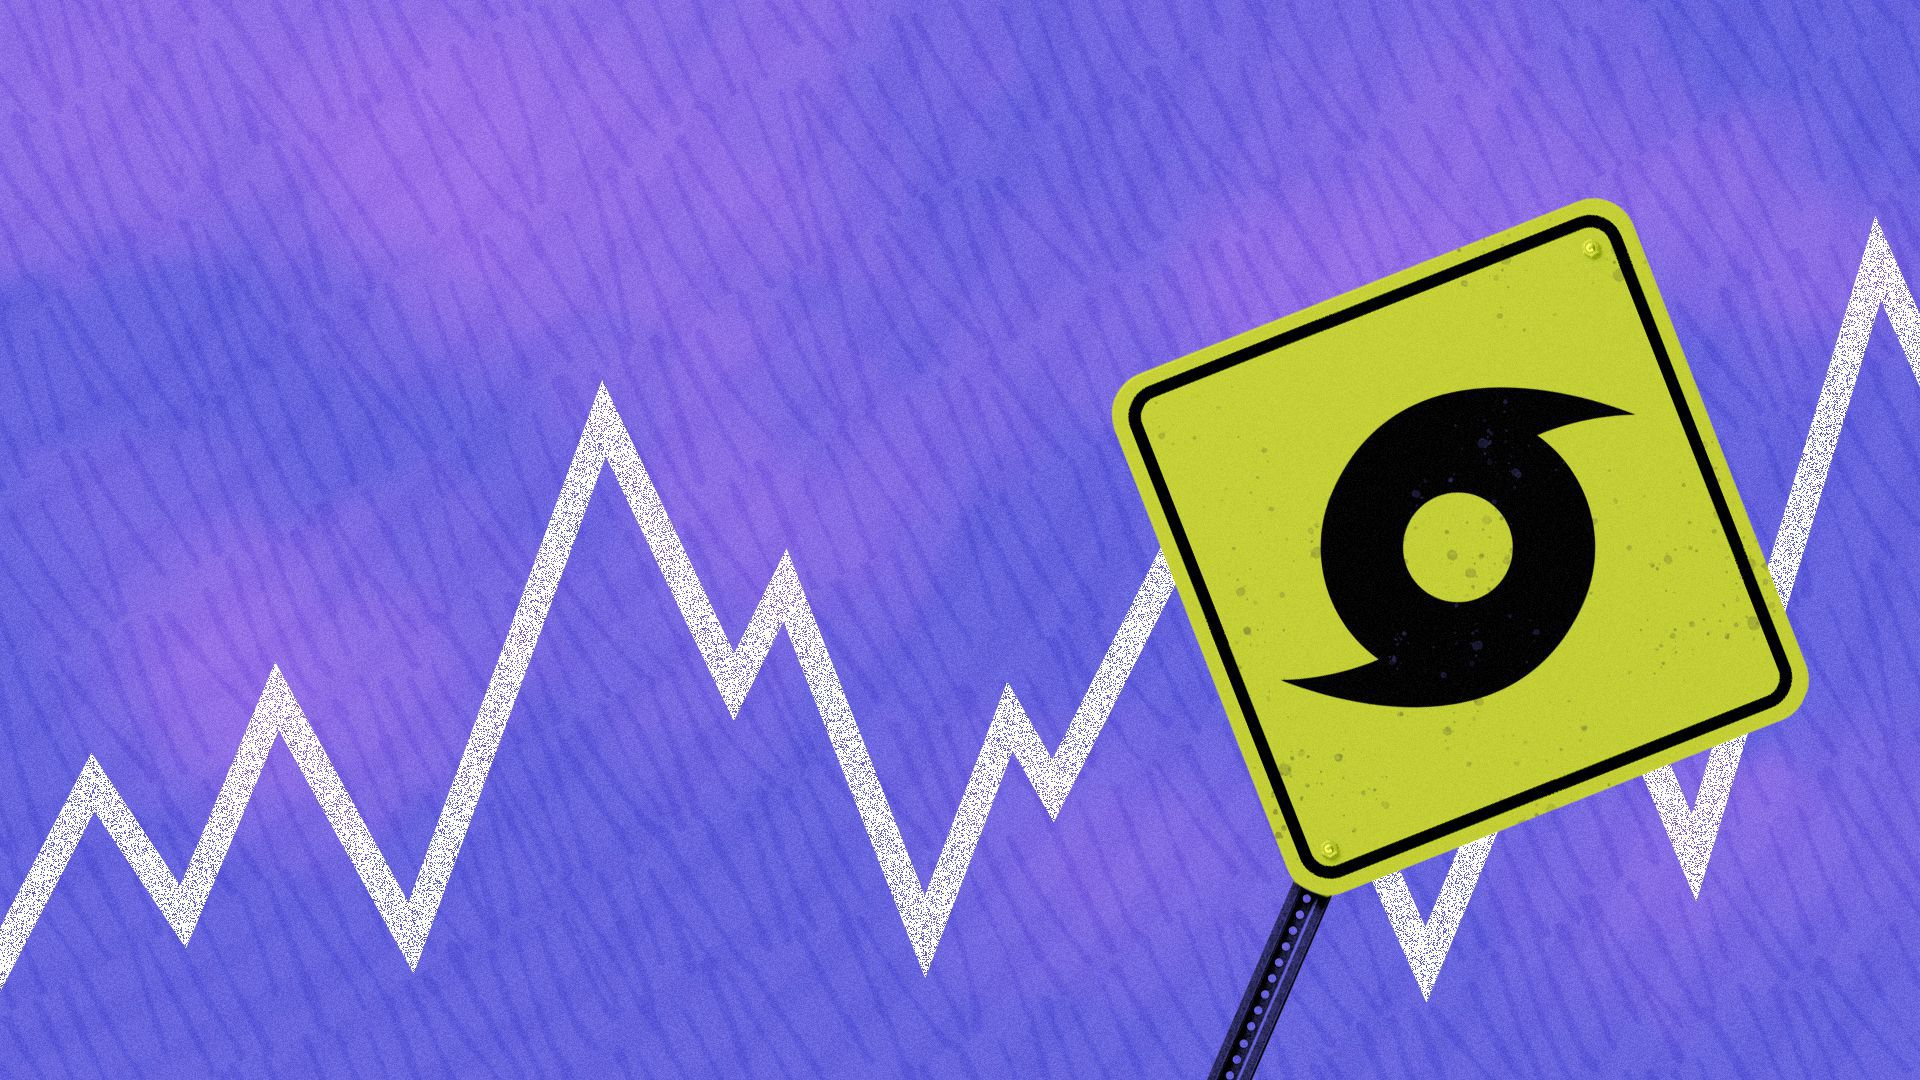 Illustration of a road sign with a hurricane icon on it in a storm